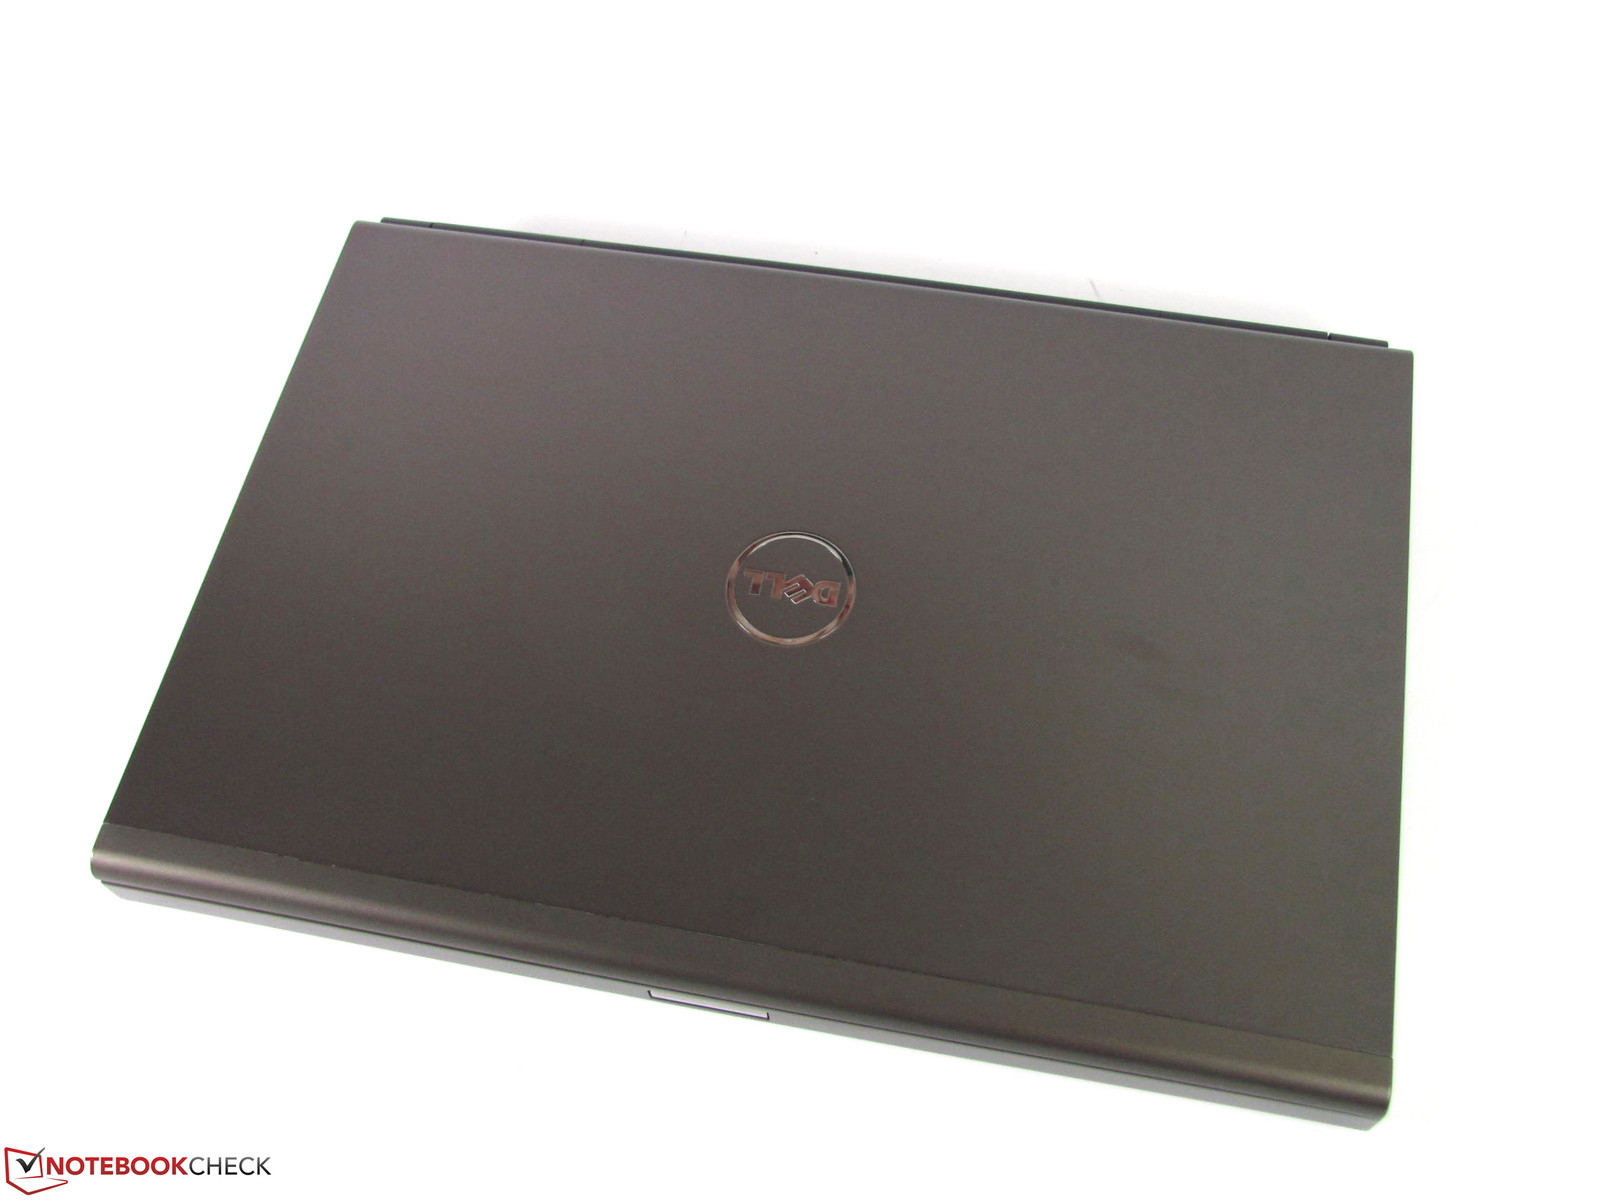 dell m4600 gia re